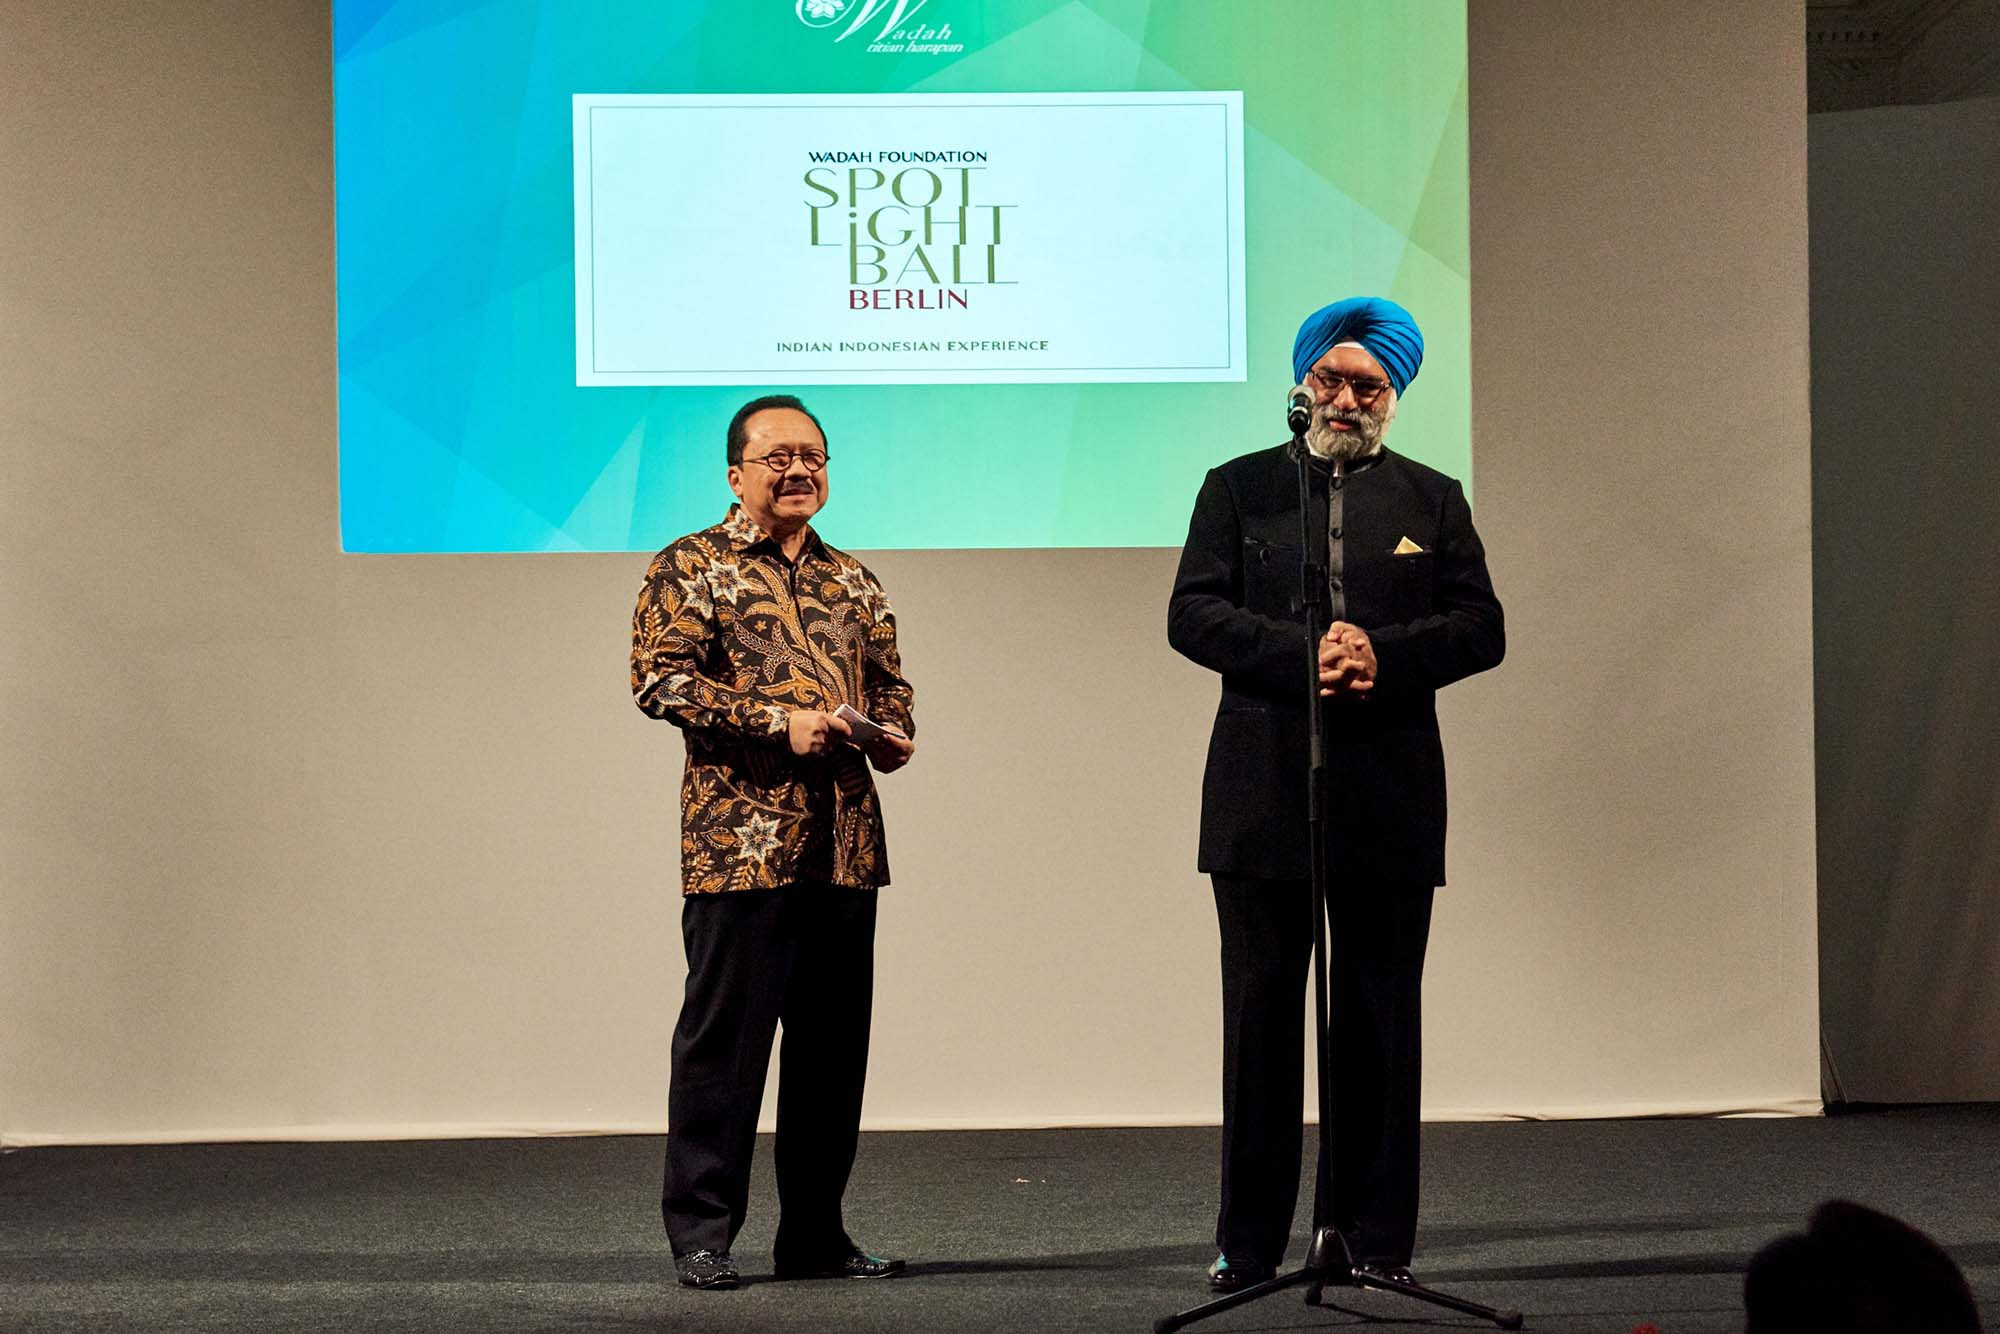 Ambassador of Indonesia H.E. Fauzi Bowo and Ambassador of India H.E. Gurjit Singh welcoming the audience to the SpotLight Ball Berlin.